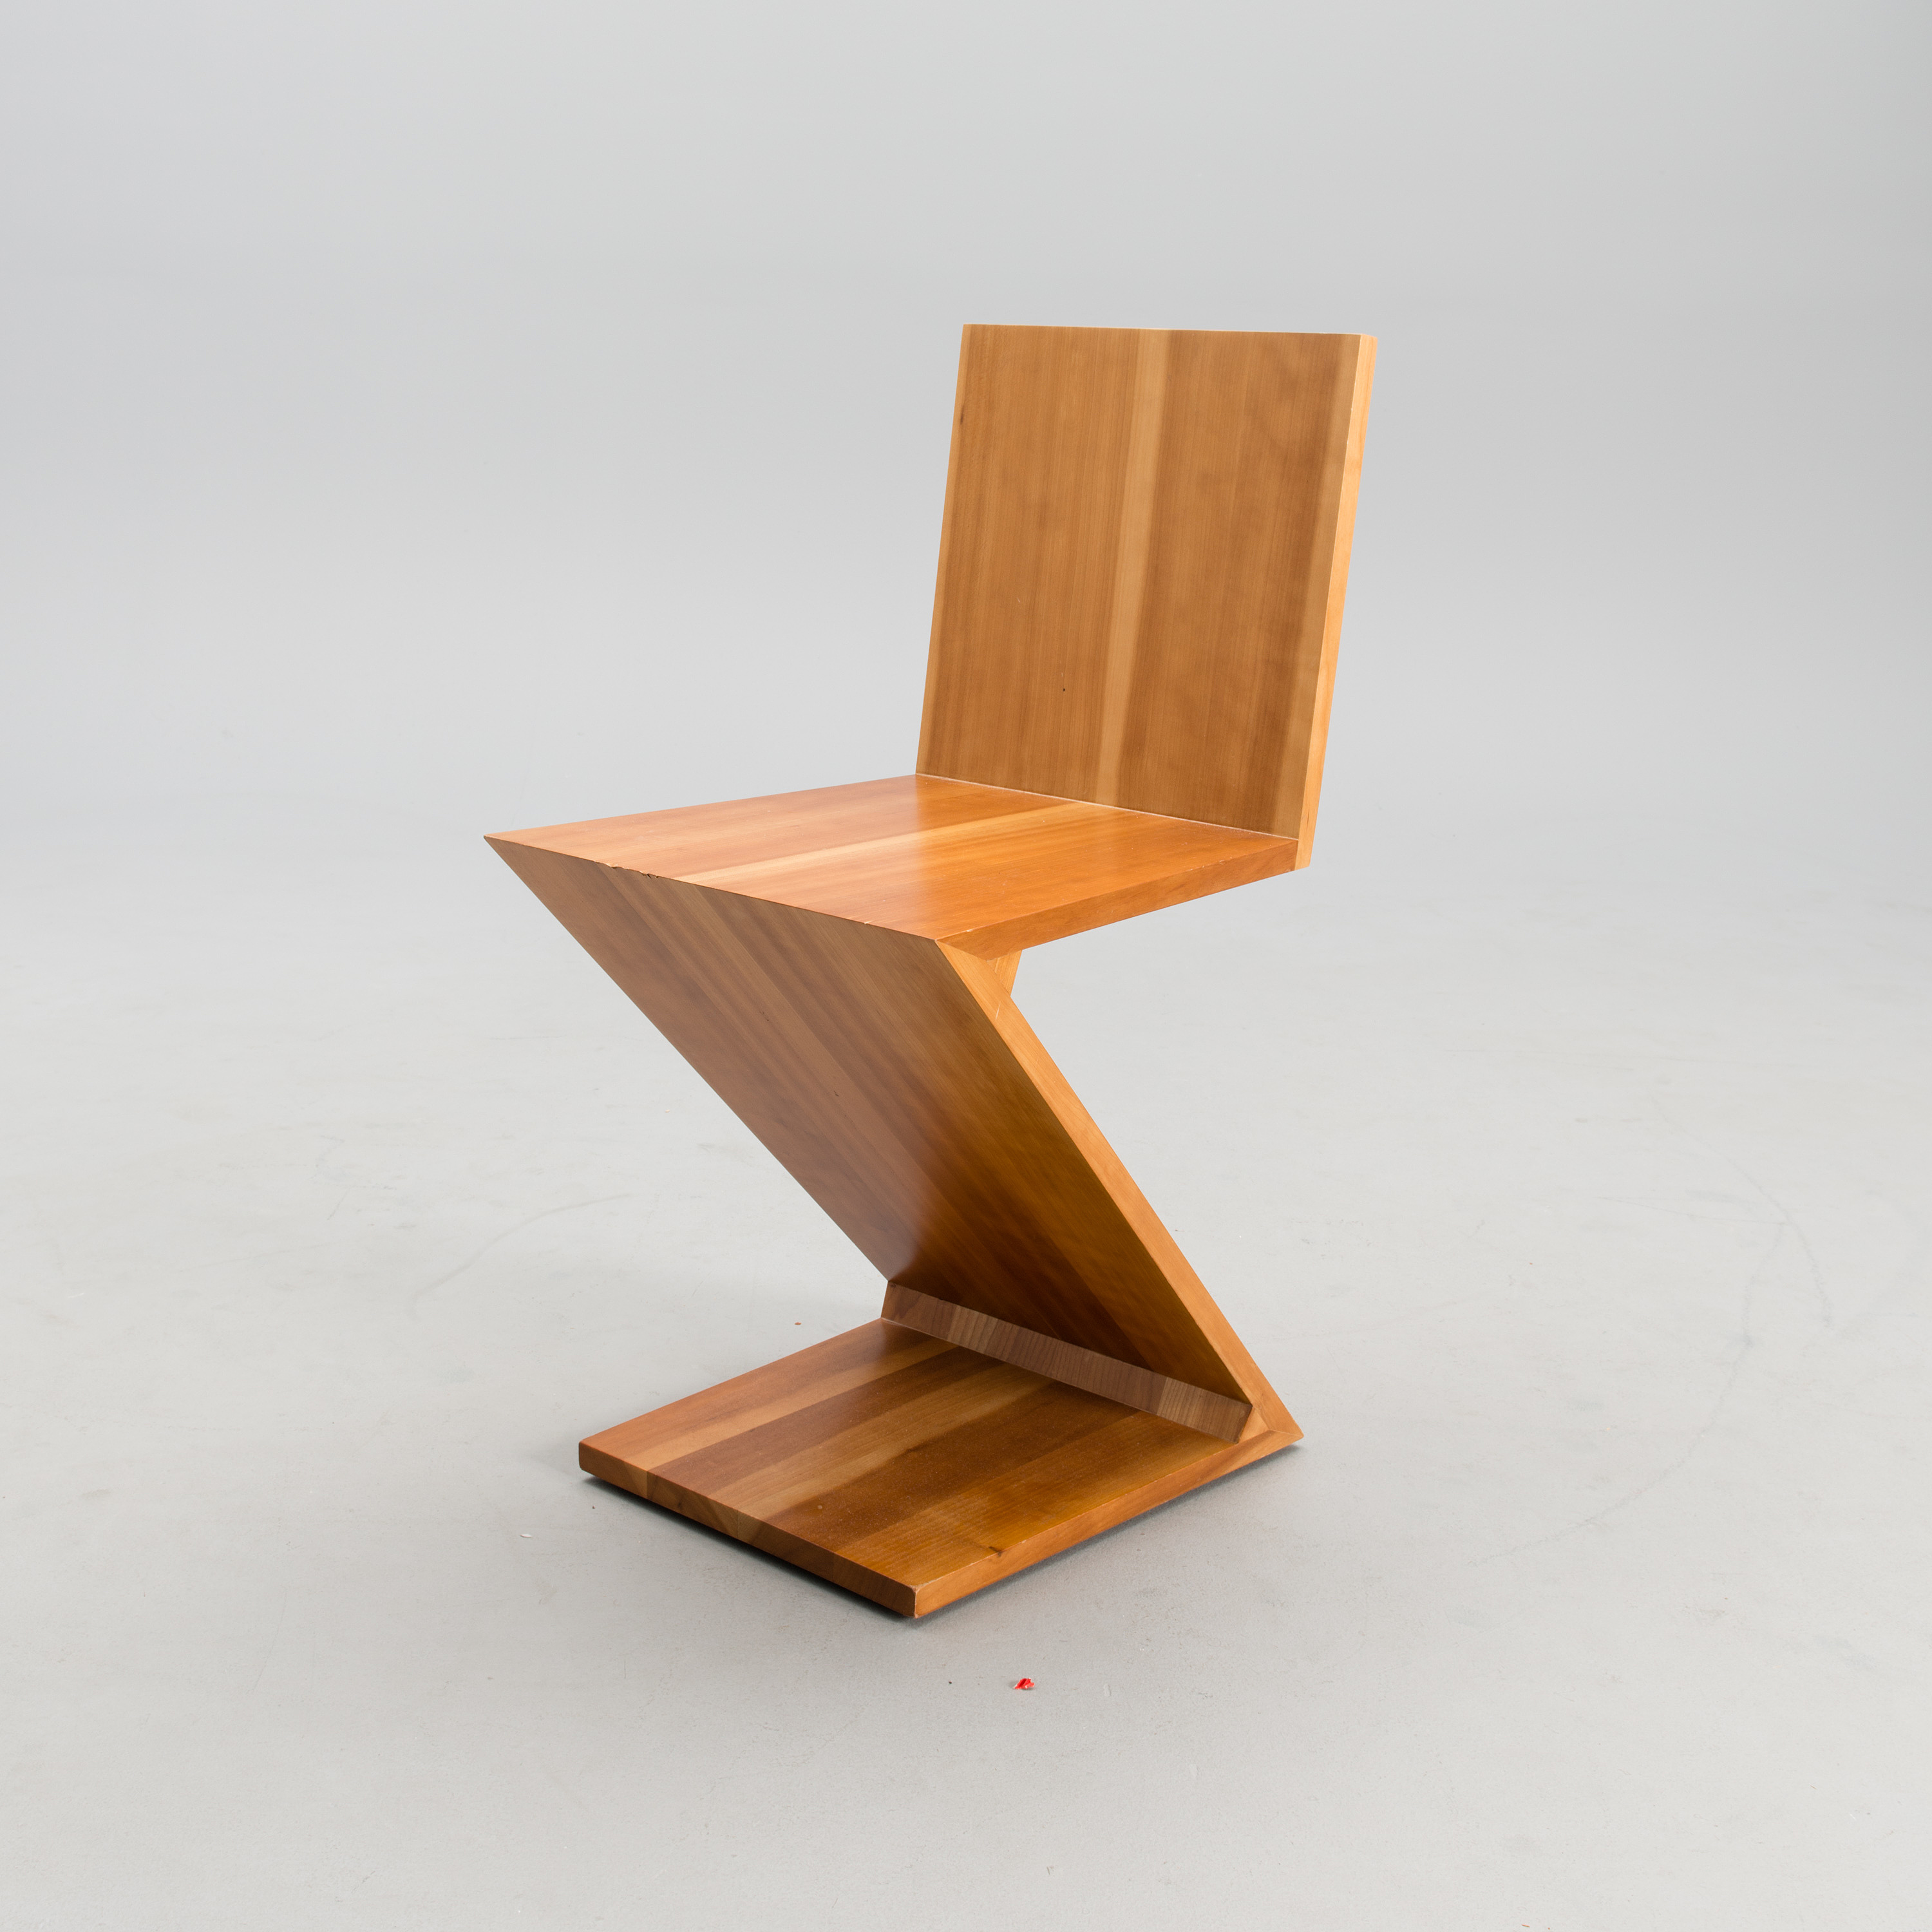 GERRIT RIETVELD, A Z Chair, 280 Zig Zag, For Cassina, From The Late 20th  Century, Designed 1934.   Bukowskis